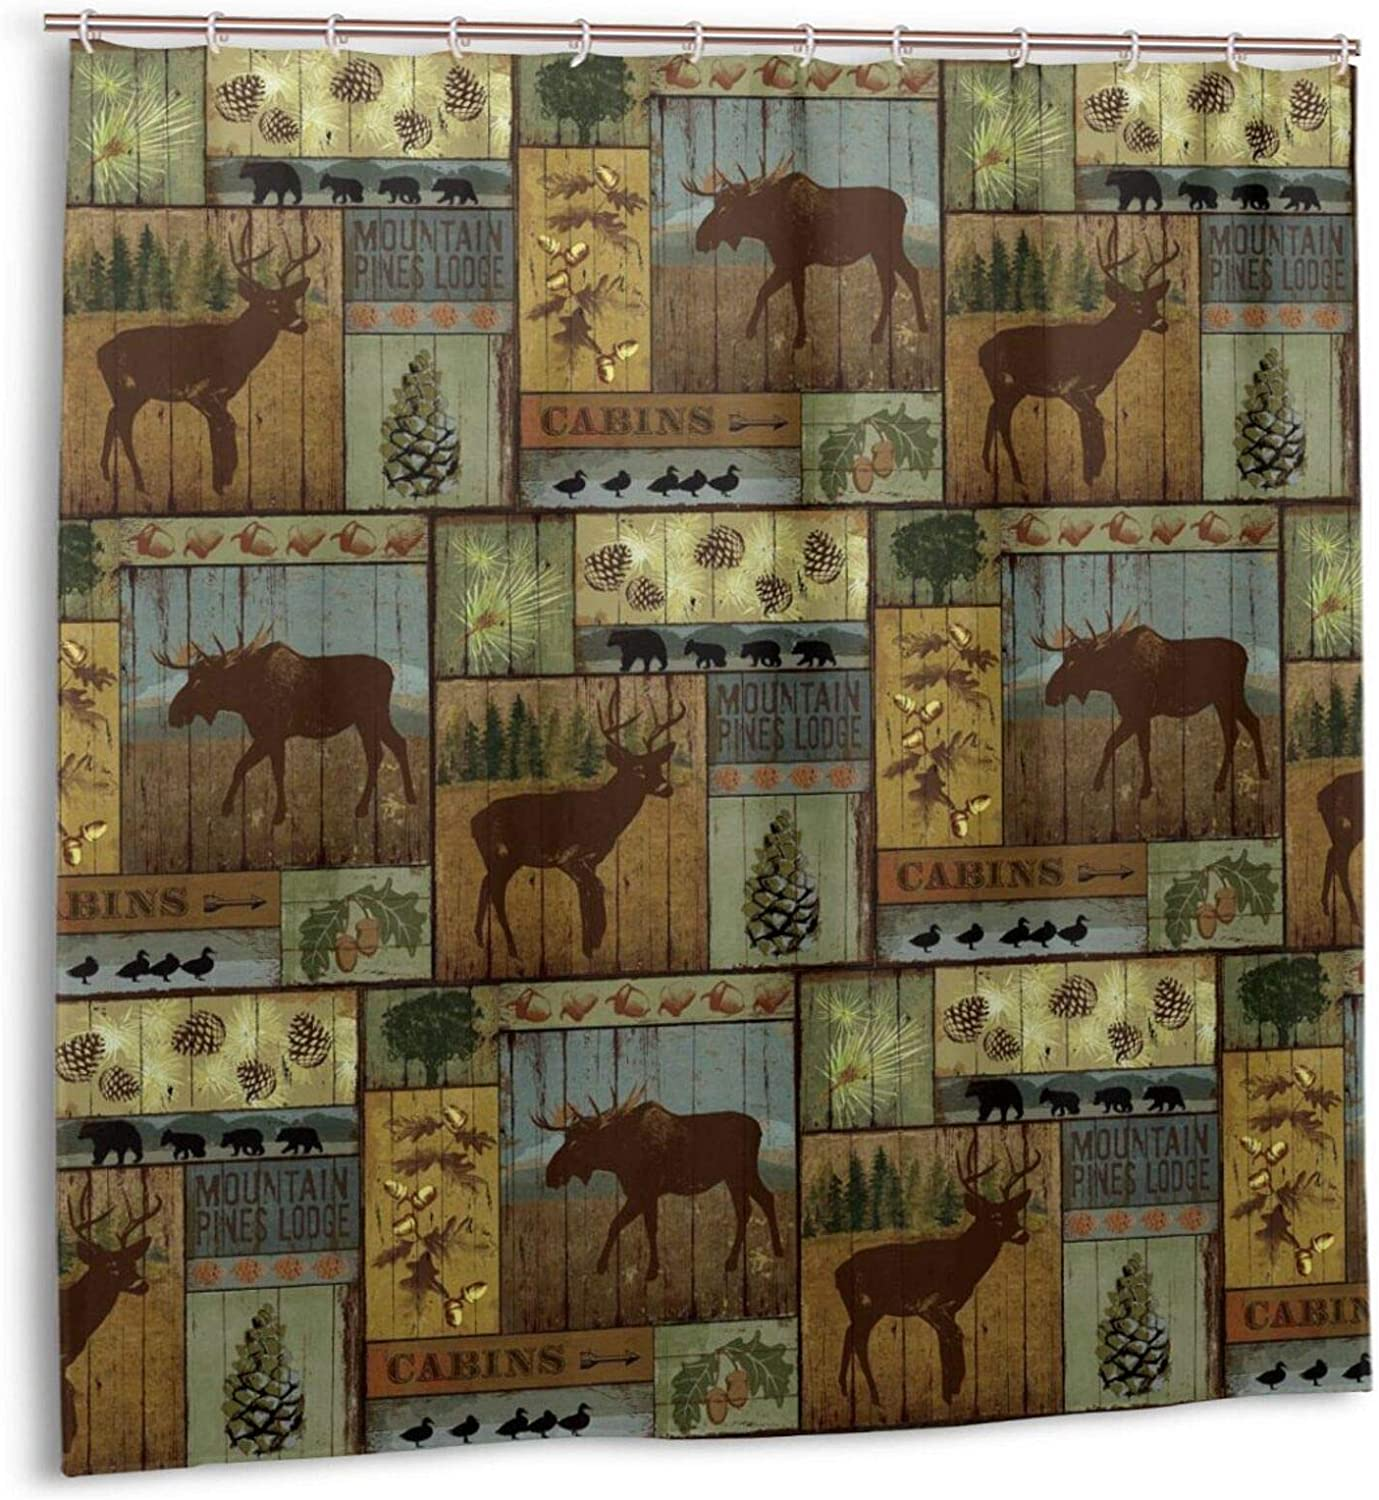 Retro Rustic Shower Curtain, Cabin Lodge Nature Wildlife Design Polyester Fabric Bath Curtains, Bear Moose Deer Bathroom Accessories Curtain Sets With Hooks 72x72 Inch